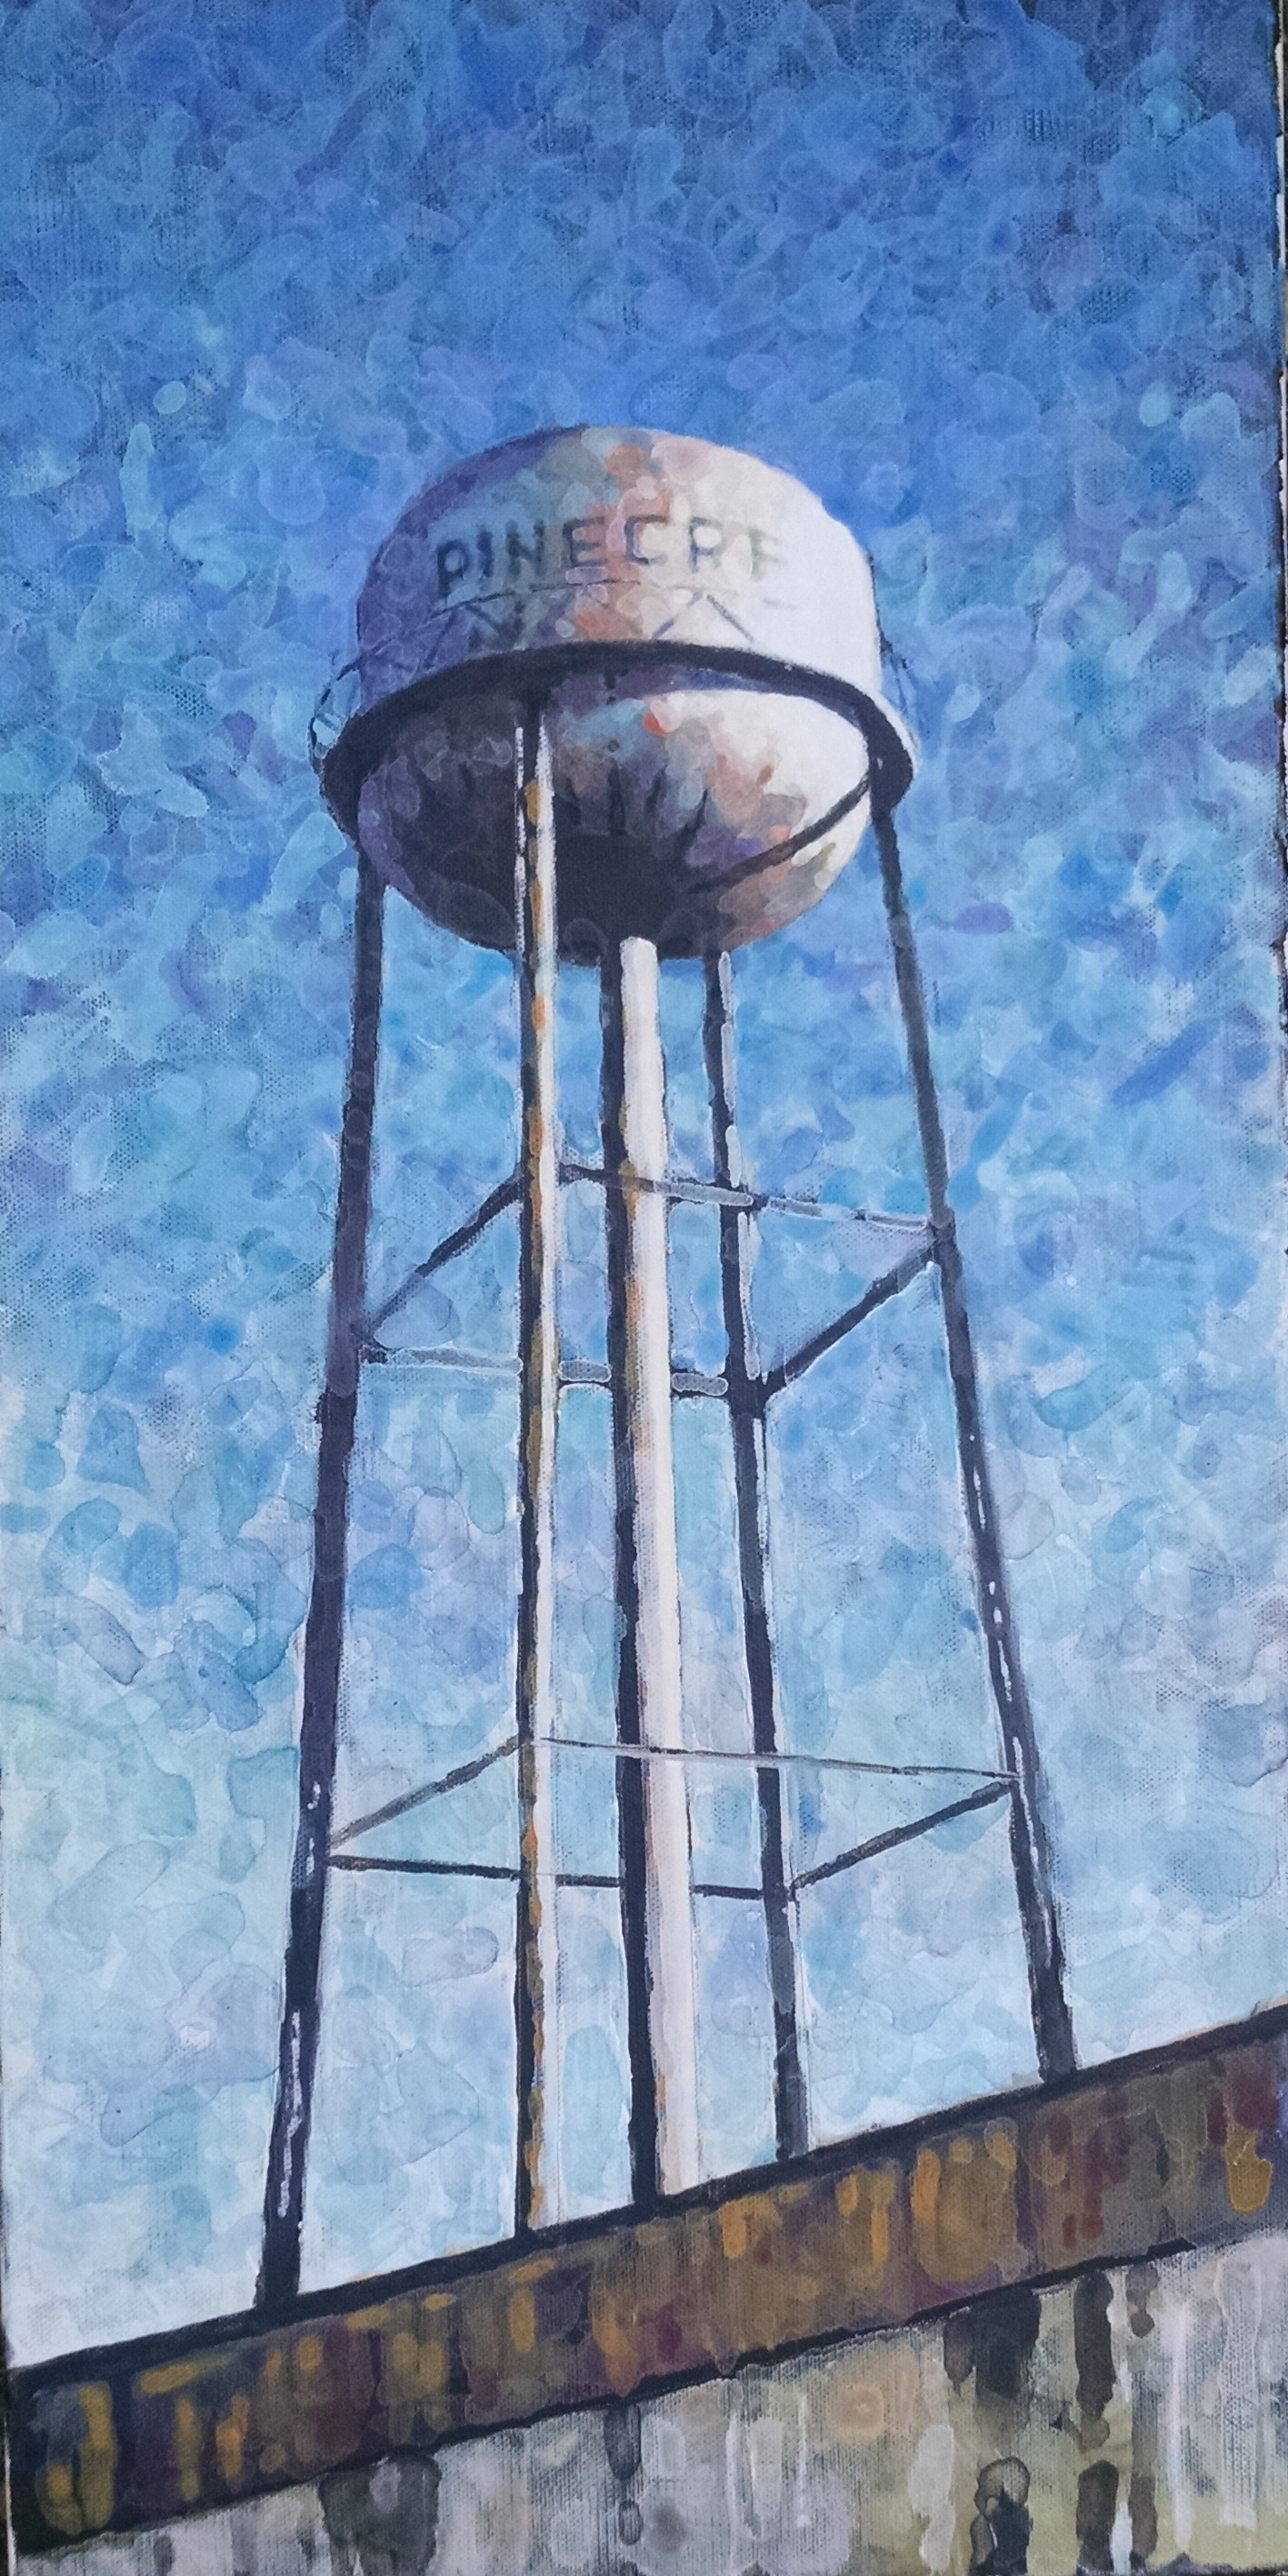 A Pine Bluff AR water tower near the Dollarway neighborhood